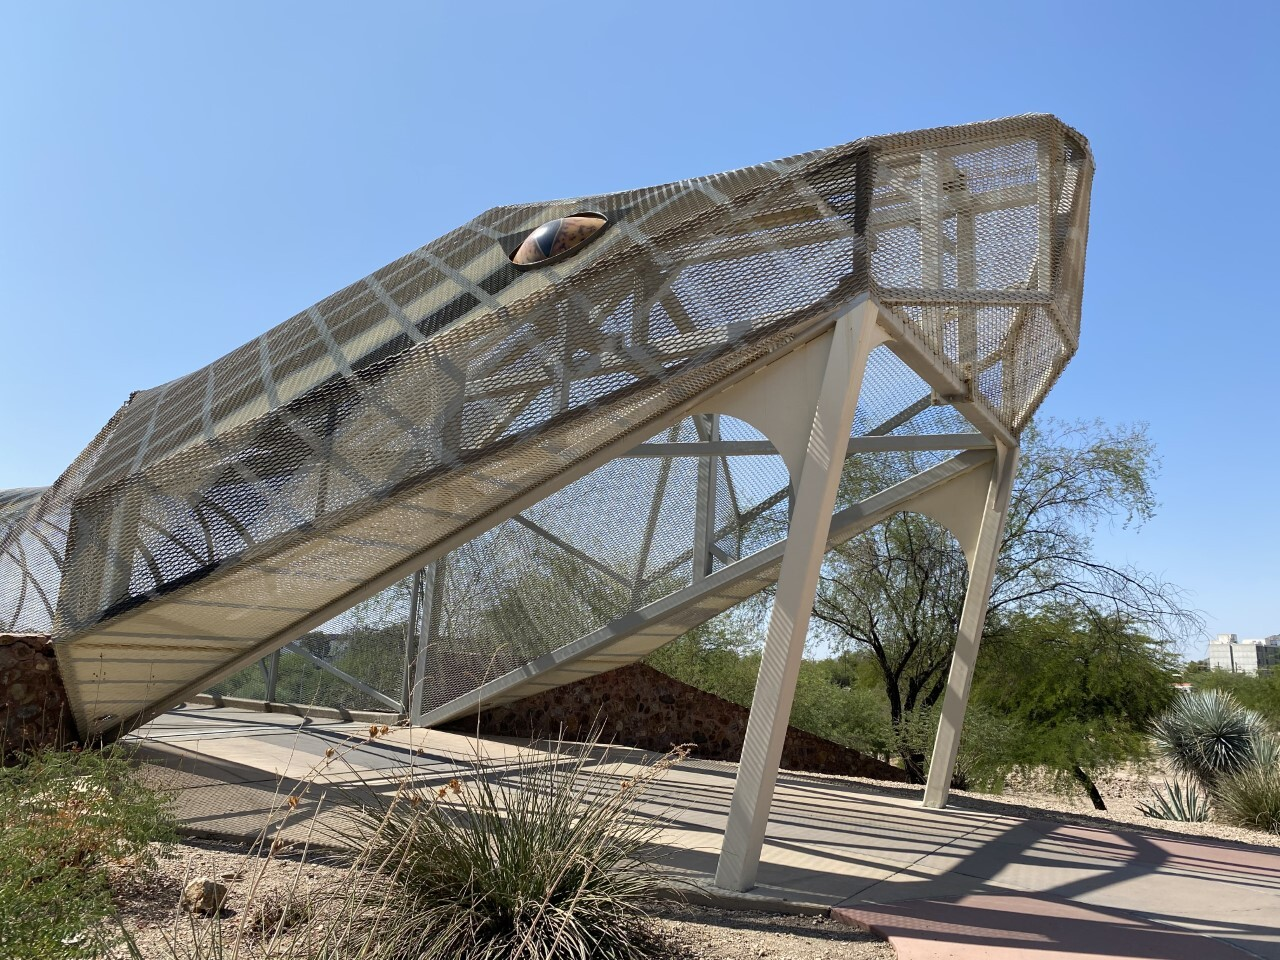 Rattlesnake Bridge near downtown Tucson